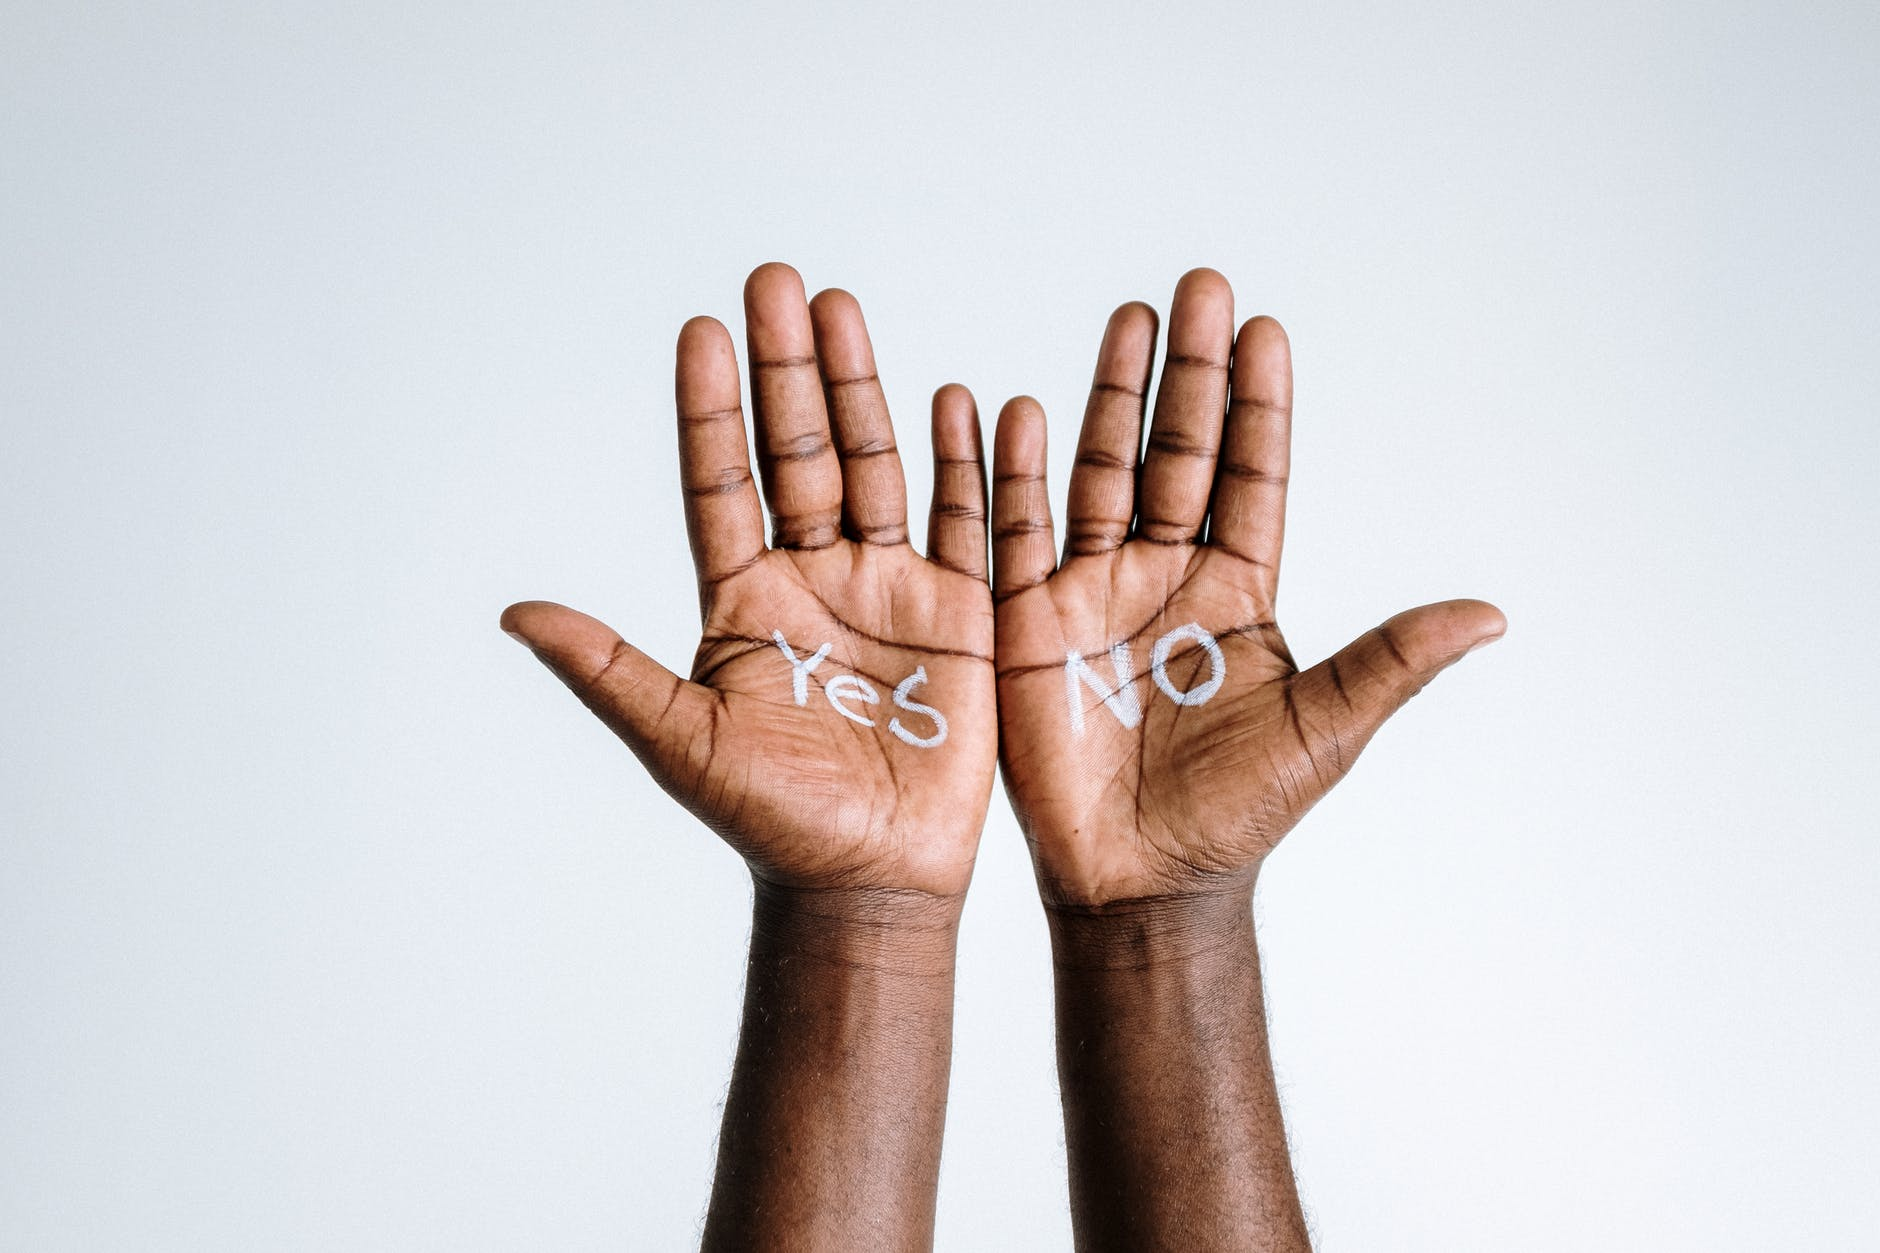 photo of person s hand with words